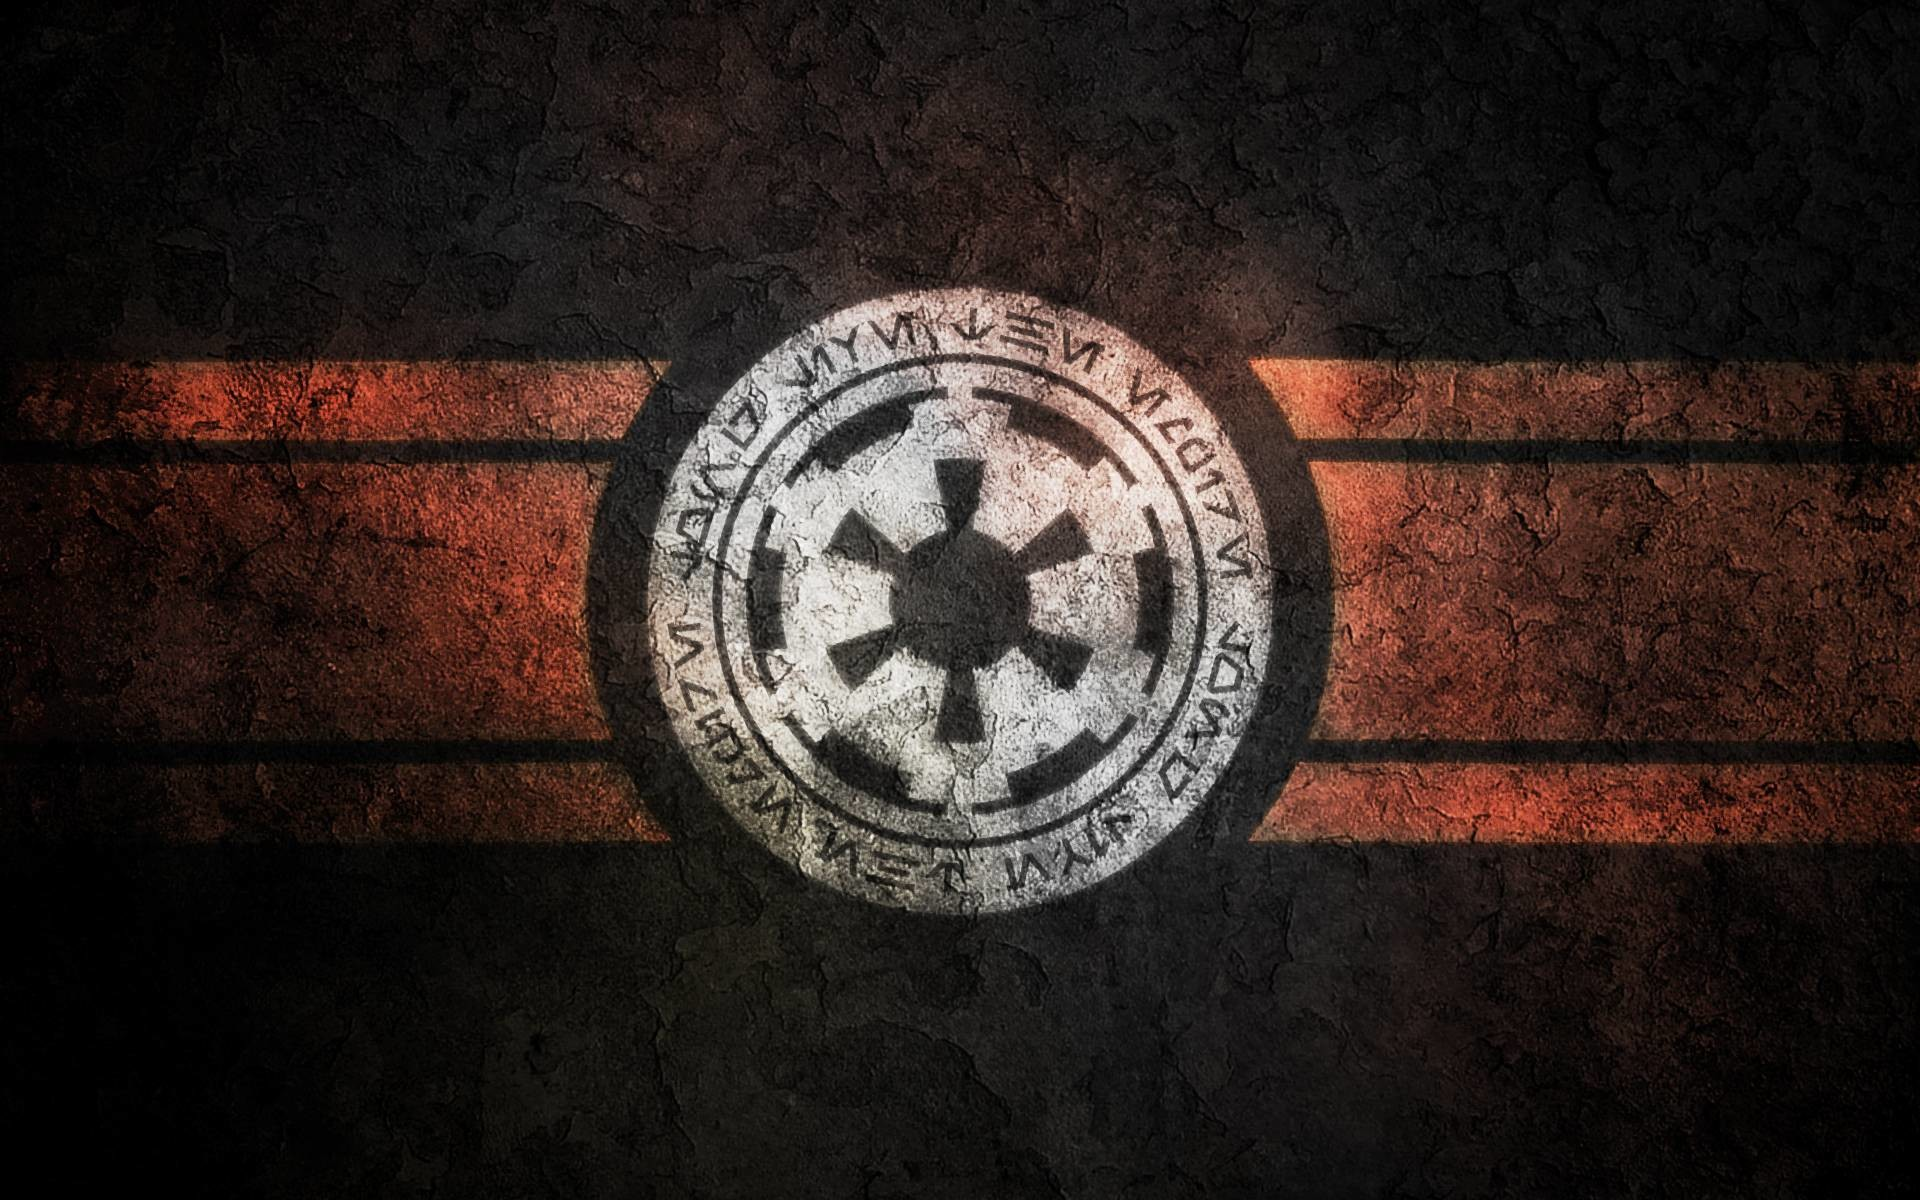 1920x1200 Most Downloaded Star Wars Logo Wallpapers - Full HD wallpaper search